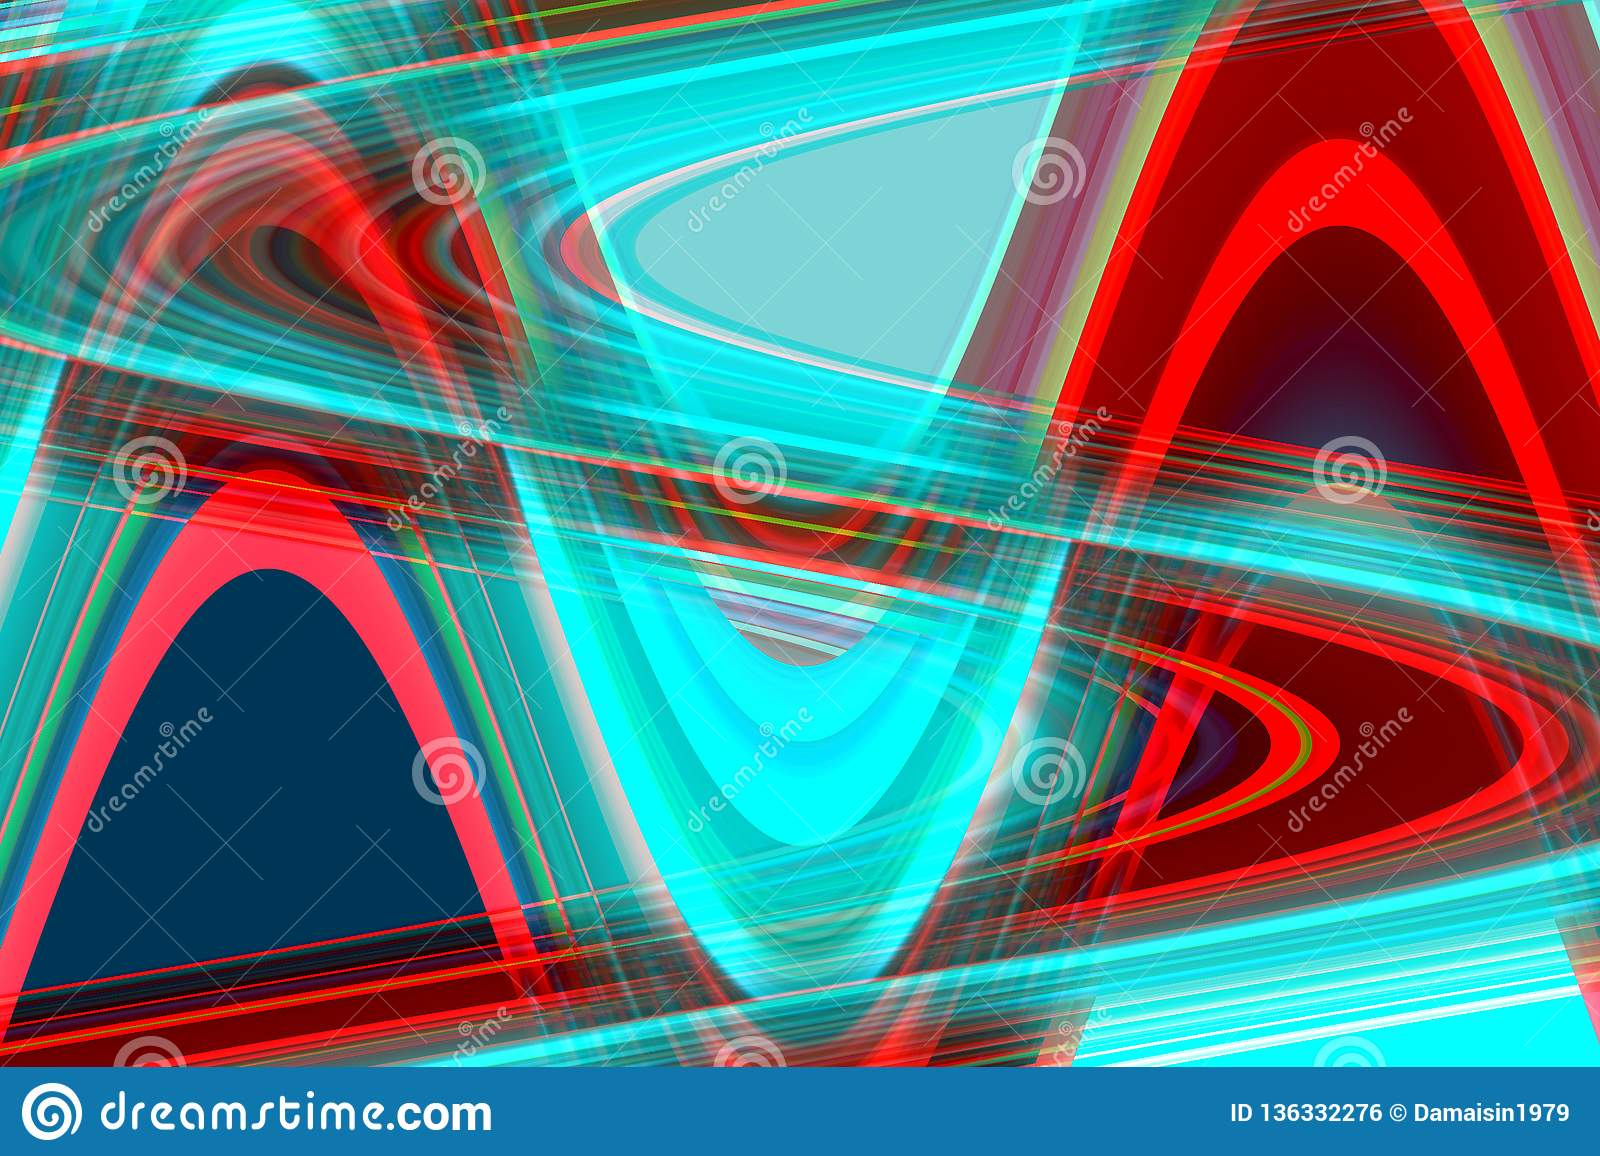 Phosphorescent Red Blue Forms And Shapes Geometric Abstract